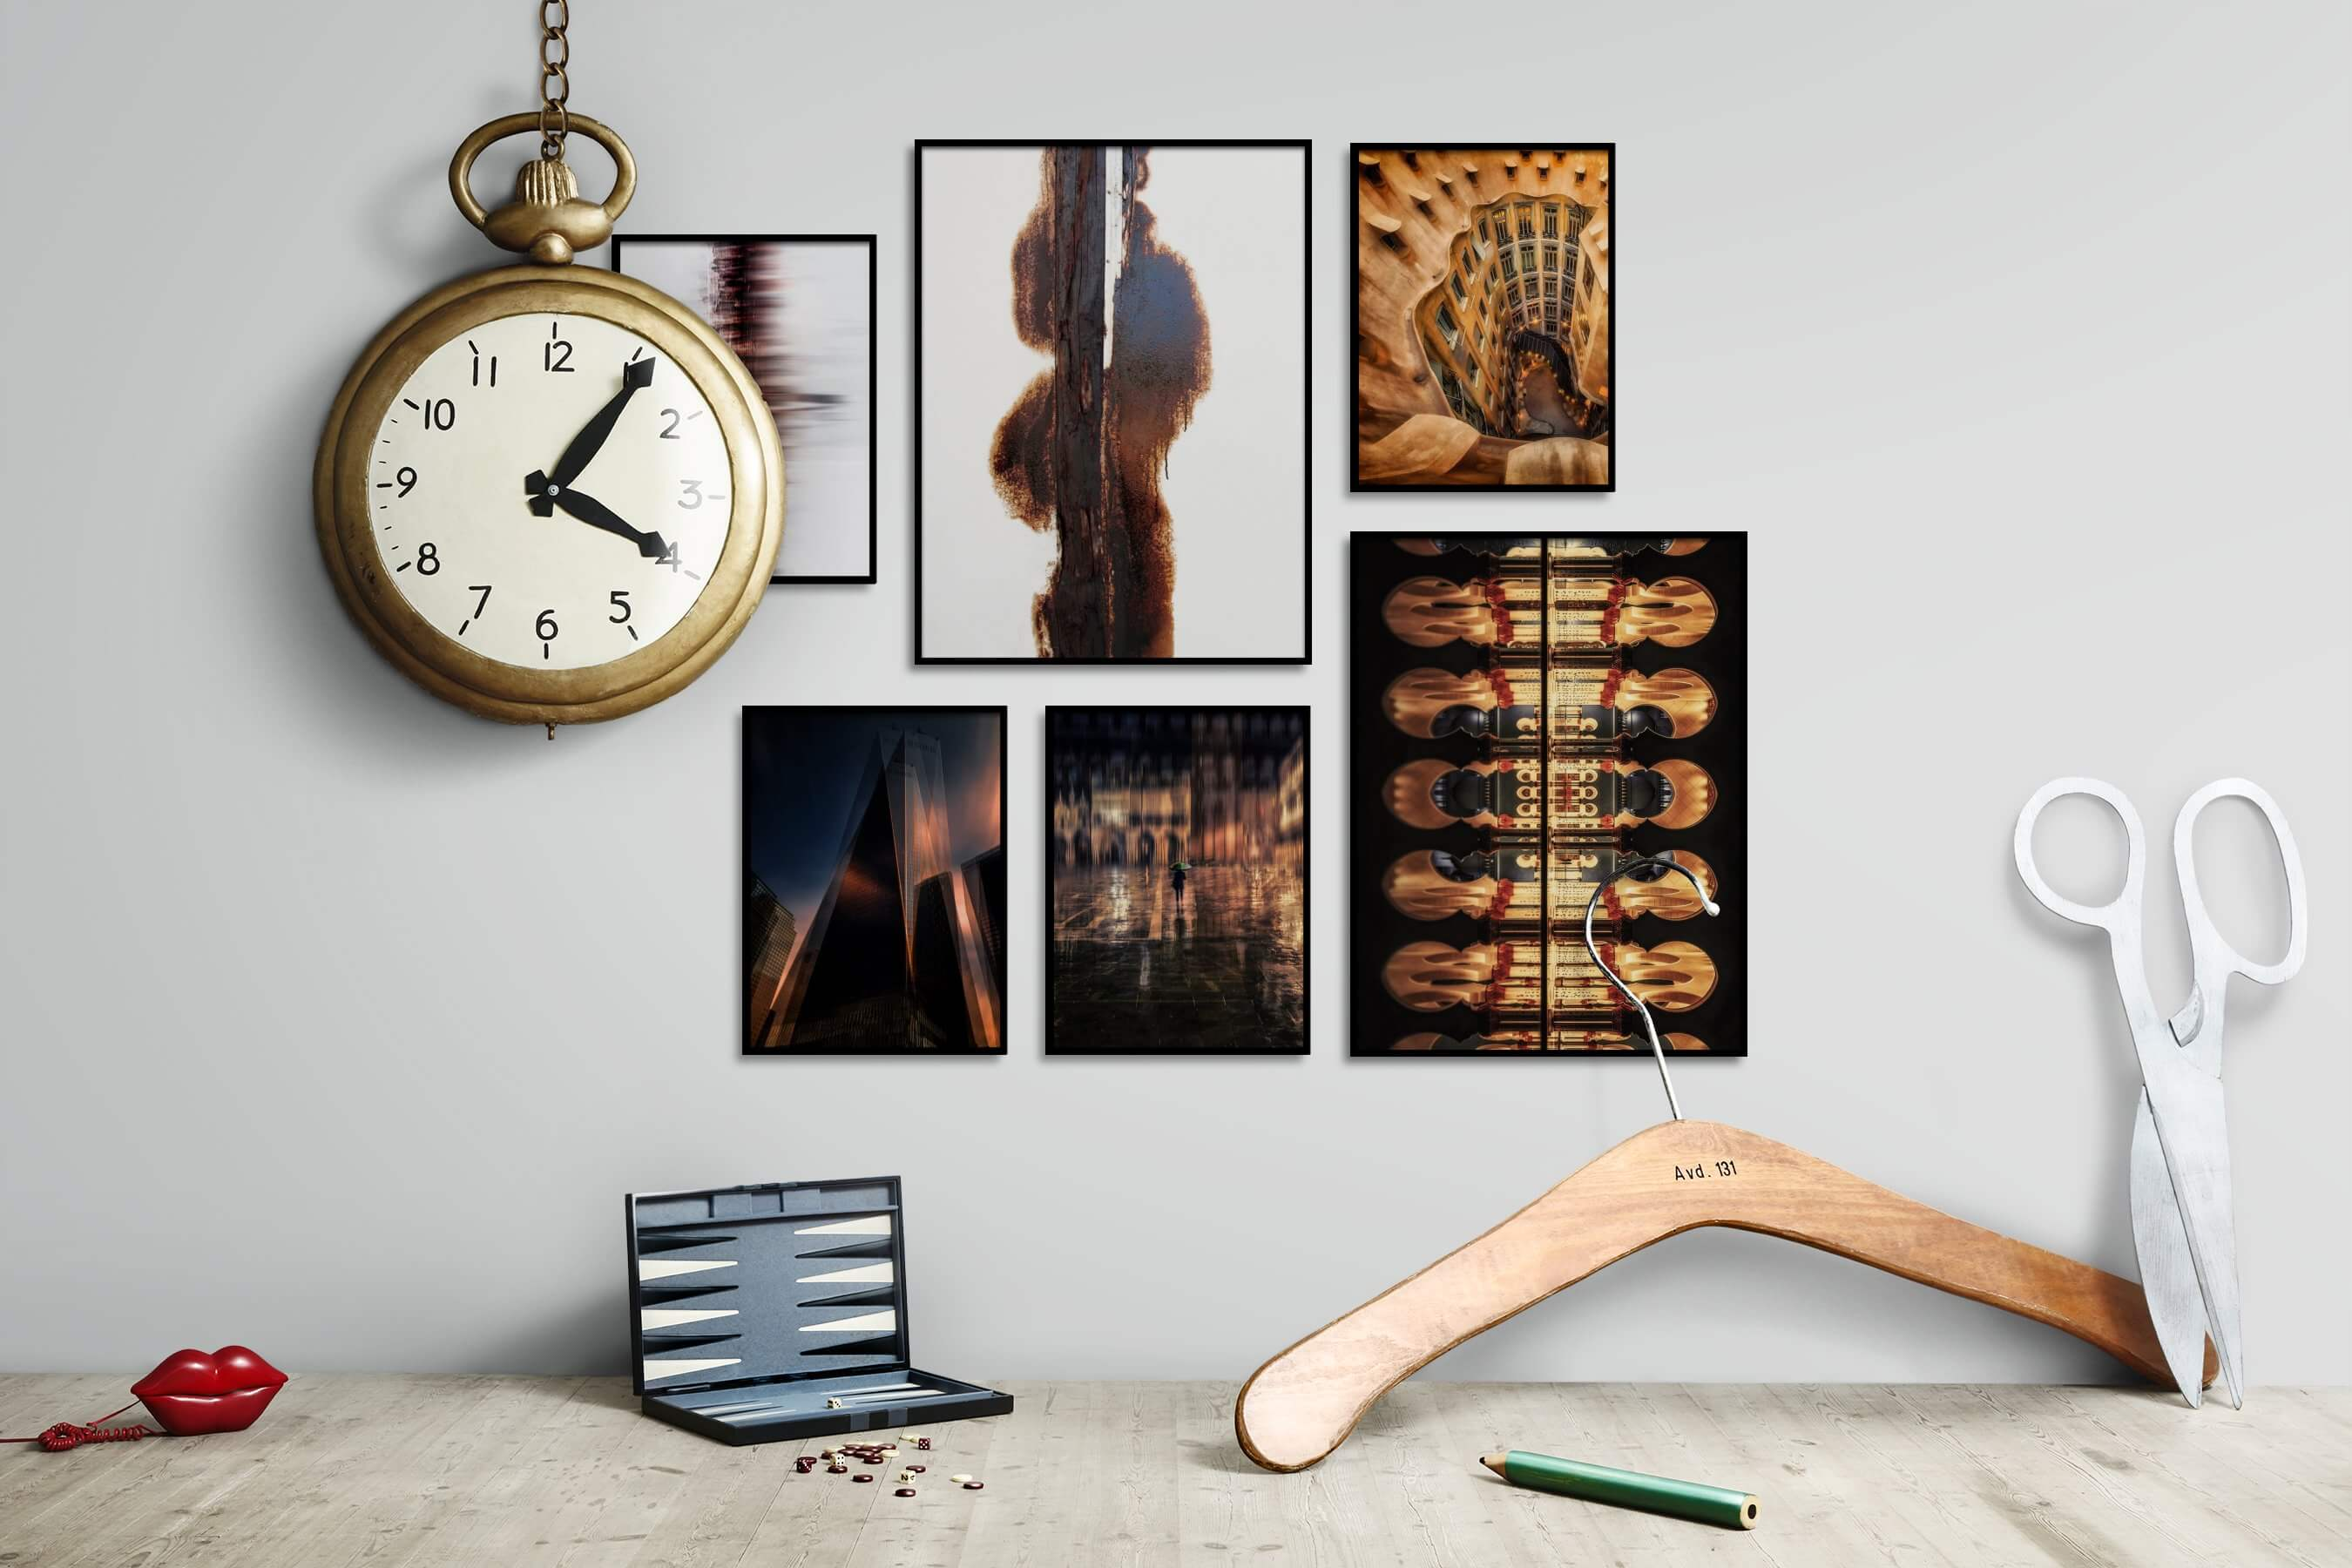 Gallery wall idea with six framed pictures arranged on a wall depicting For the Moderate, City Life, Americana, For the Minimalist, and For the Maximalist